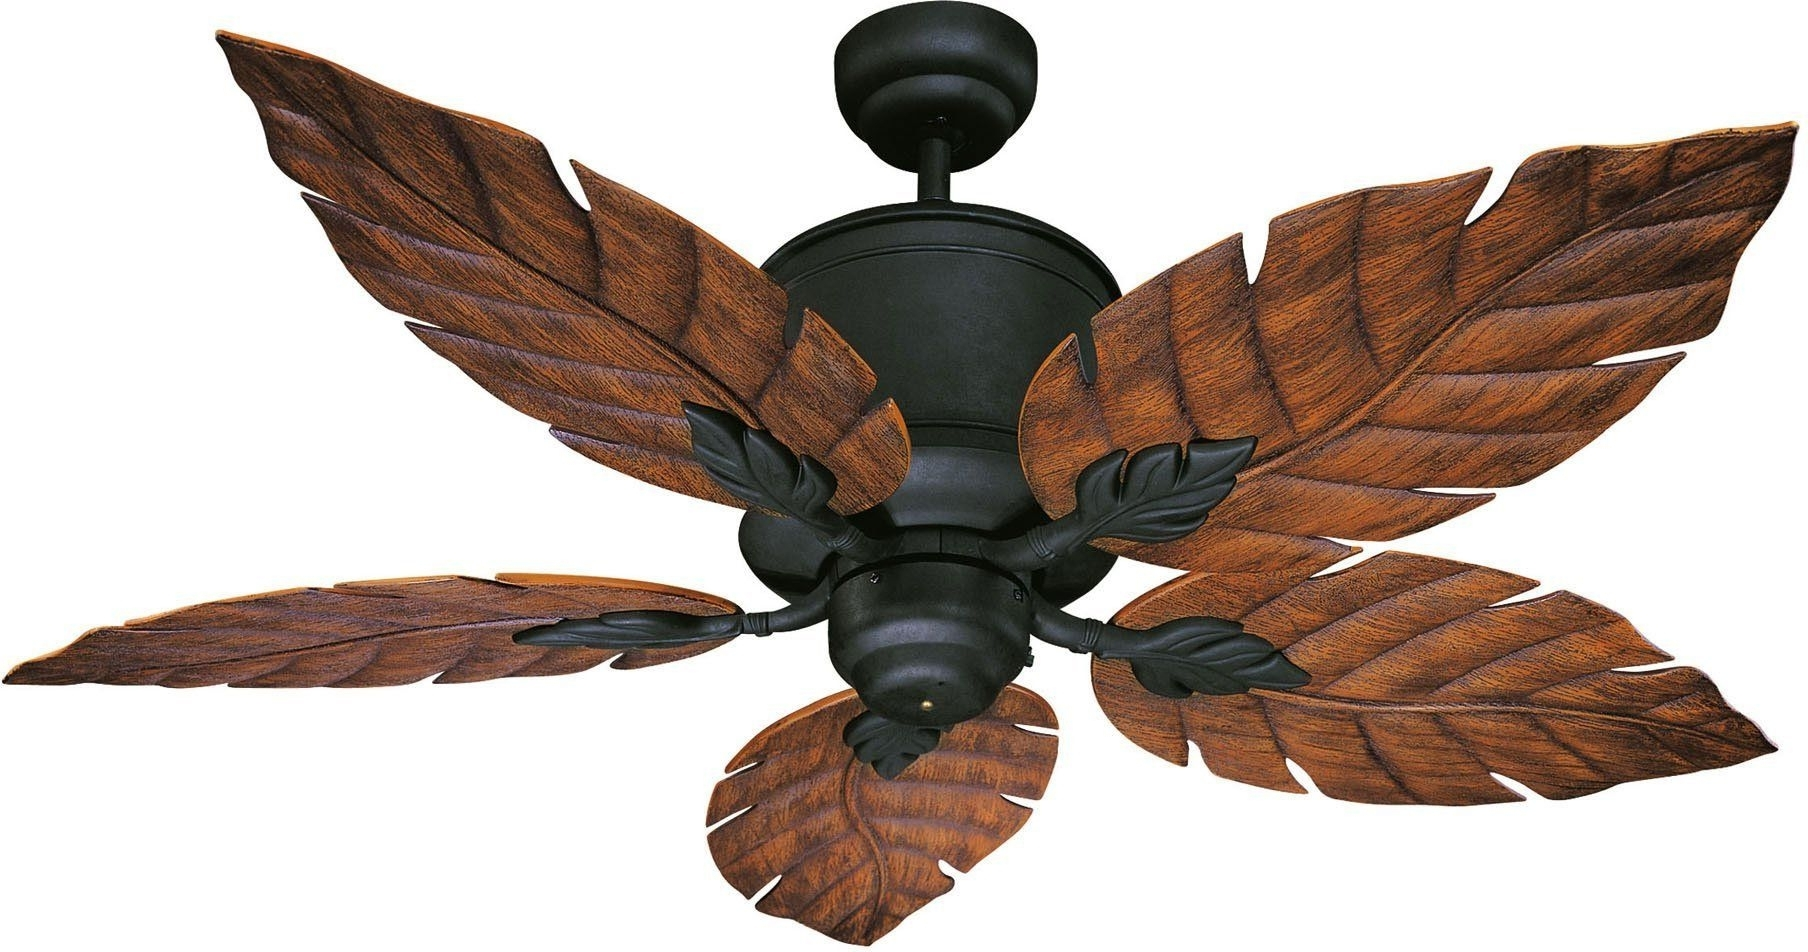 "Horseshoe Black Portico Portico 52"" Five Blade Outdoor Ceiling Fan Regarding Well Liked Outdoor Ceiling Fans With Palm Blades (Gallery 13 of 20)"